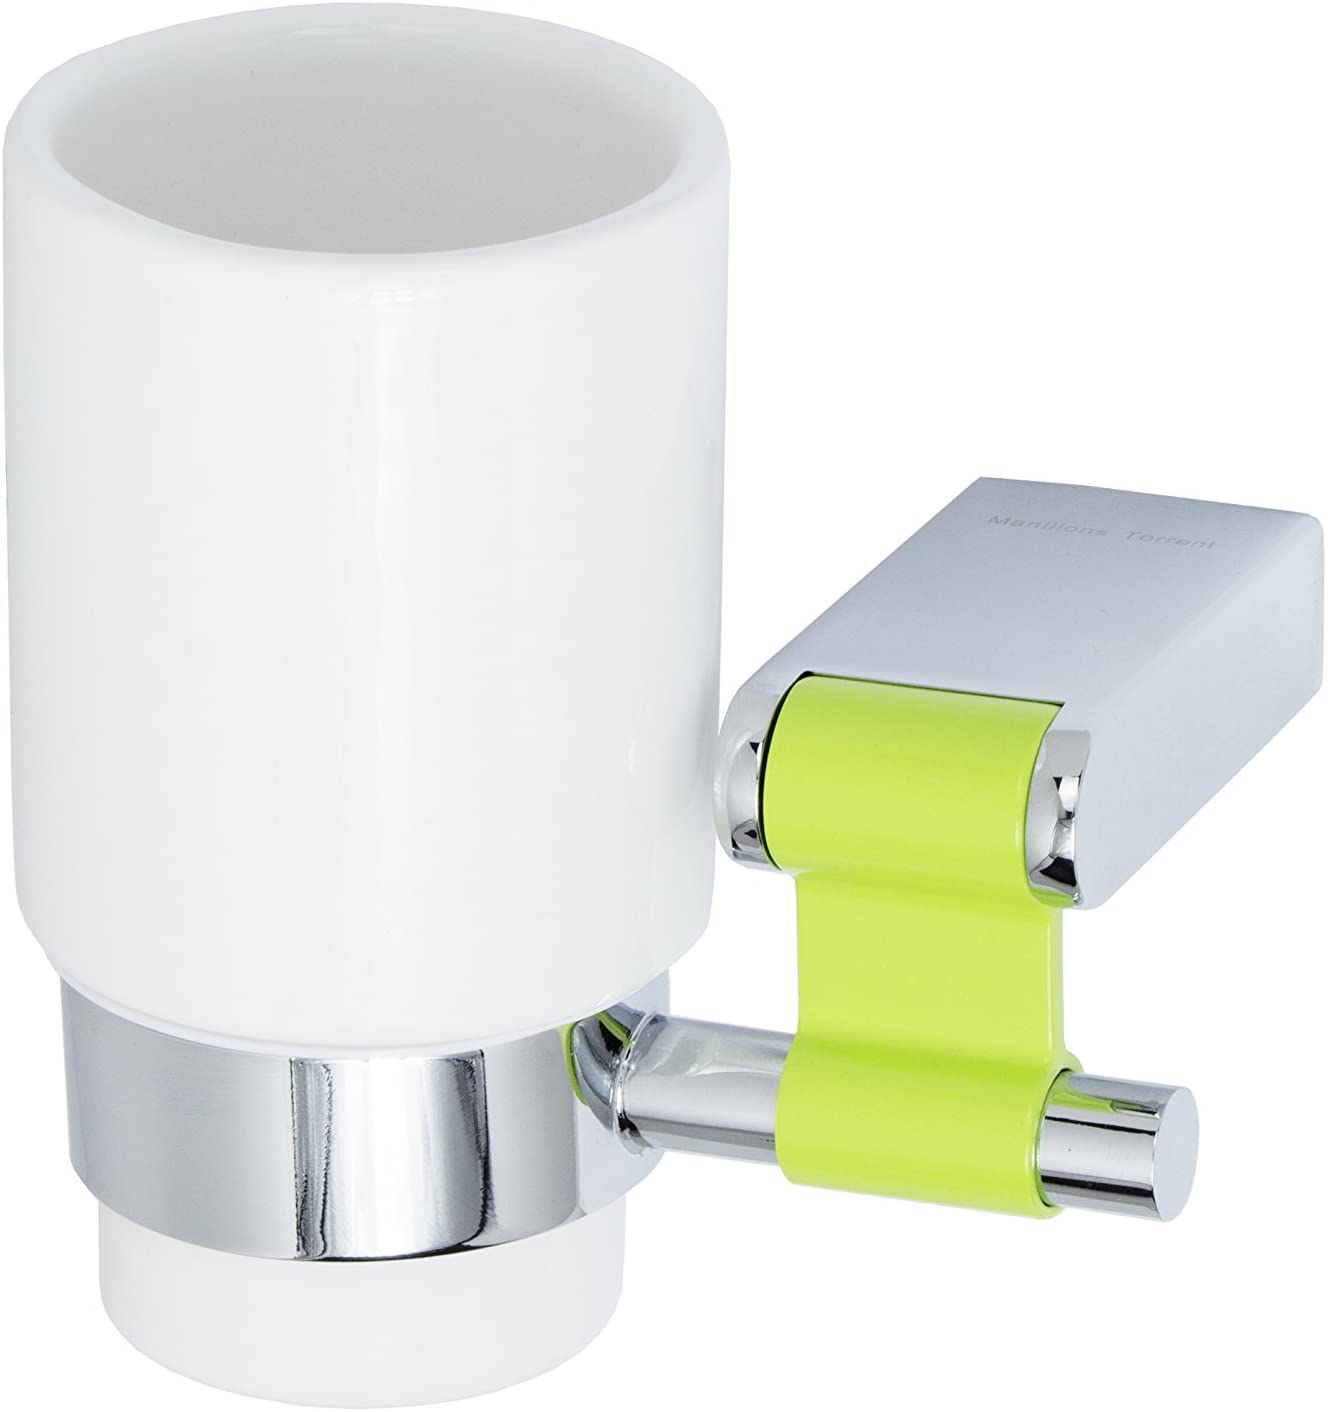 Iris Collection Wall Toothbrush and Toothpaste Holder, Polished Chrome, with White Ceramic Cup, Ensembles, Made in Spain (European Brand) (Green)